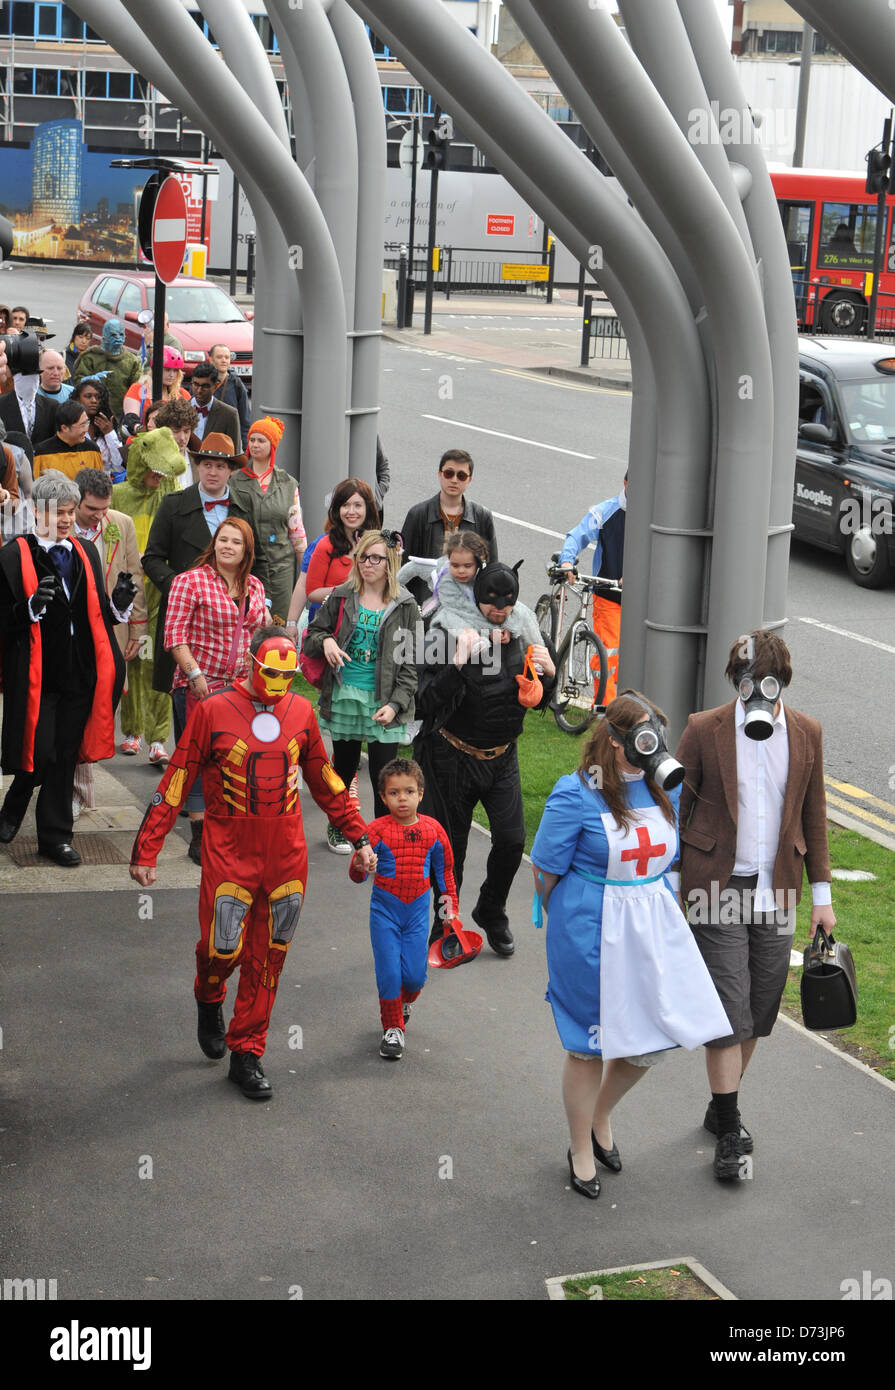 Cosplay cosplayers dressing up Stratford, London, UK. 28th April 2013. The costume parade walks around Stratford. - Stock Image